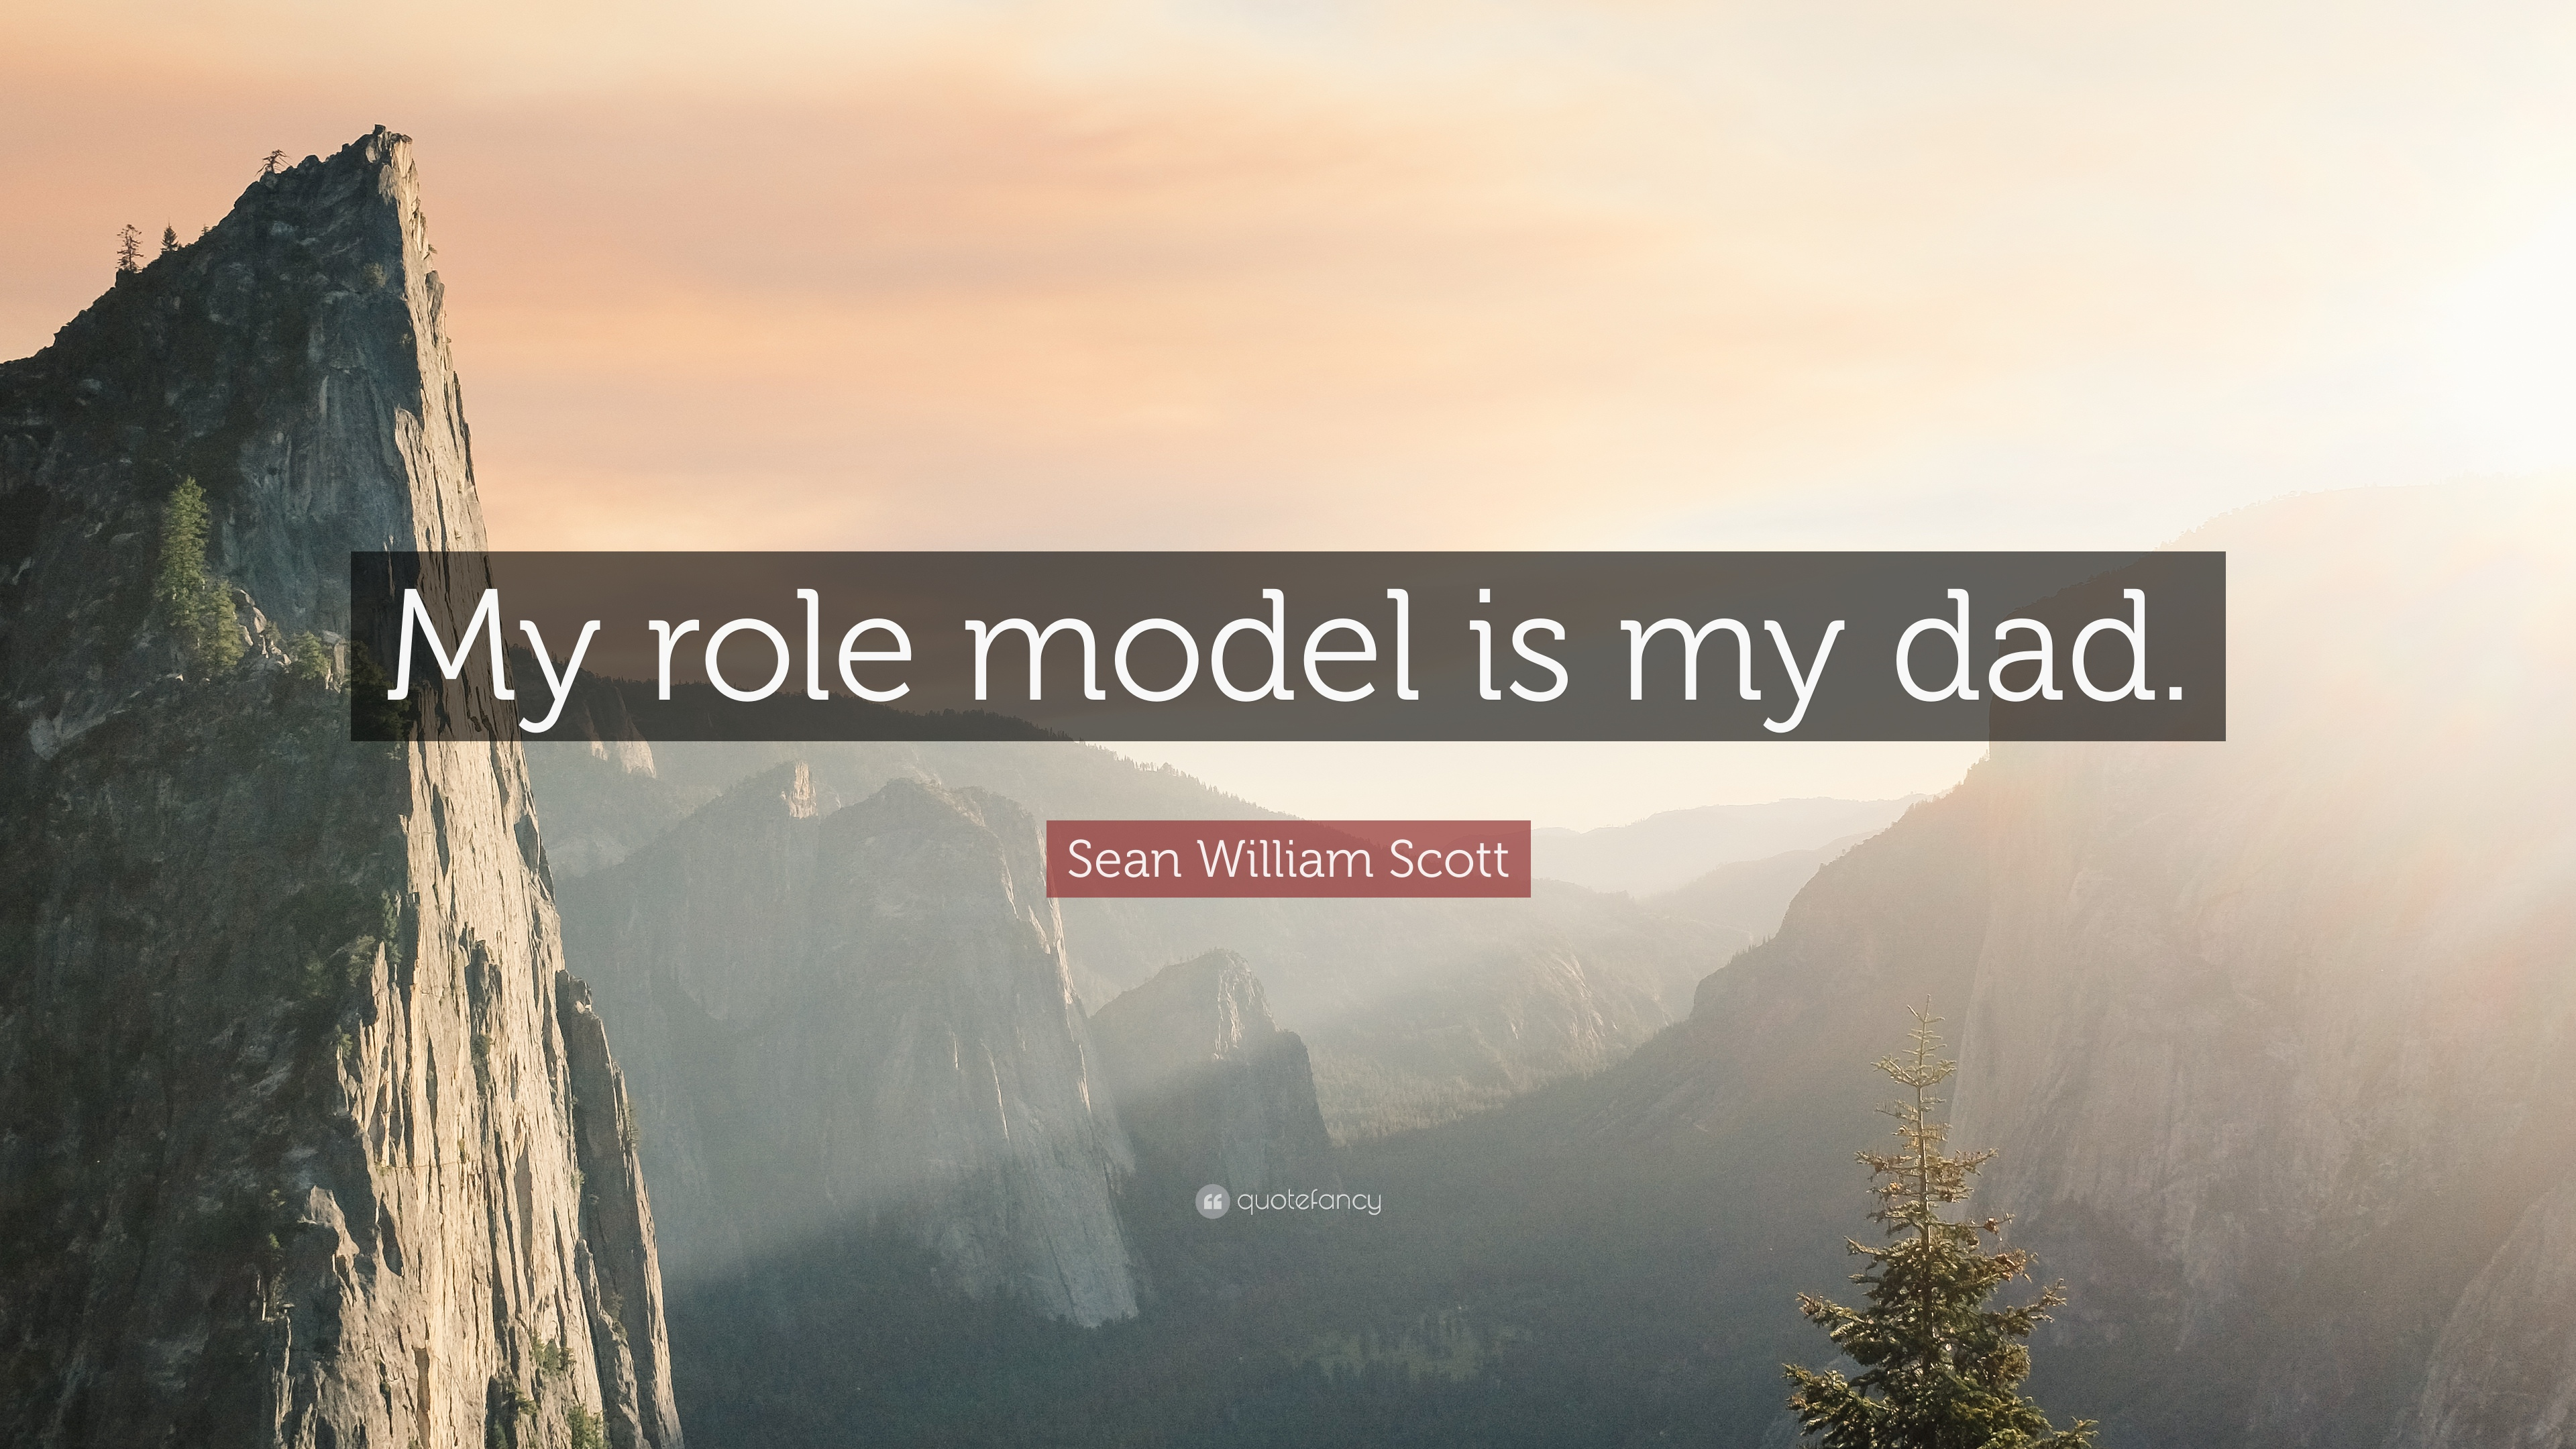 Thanking My Role Model